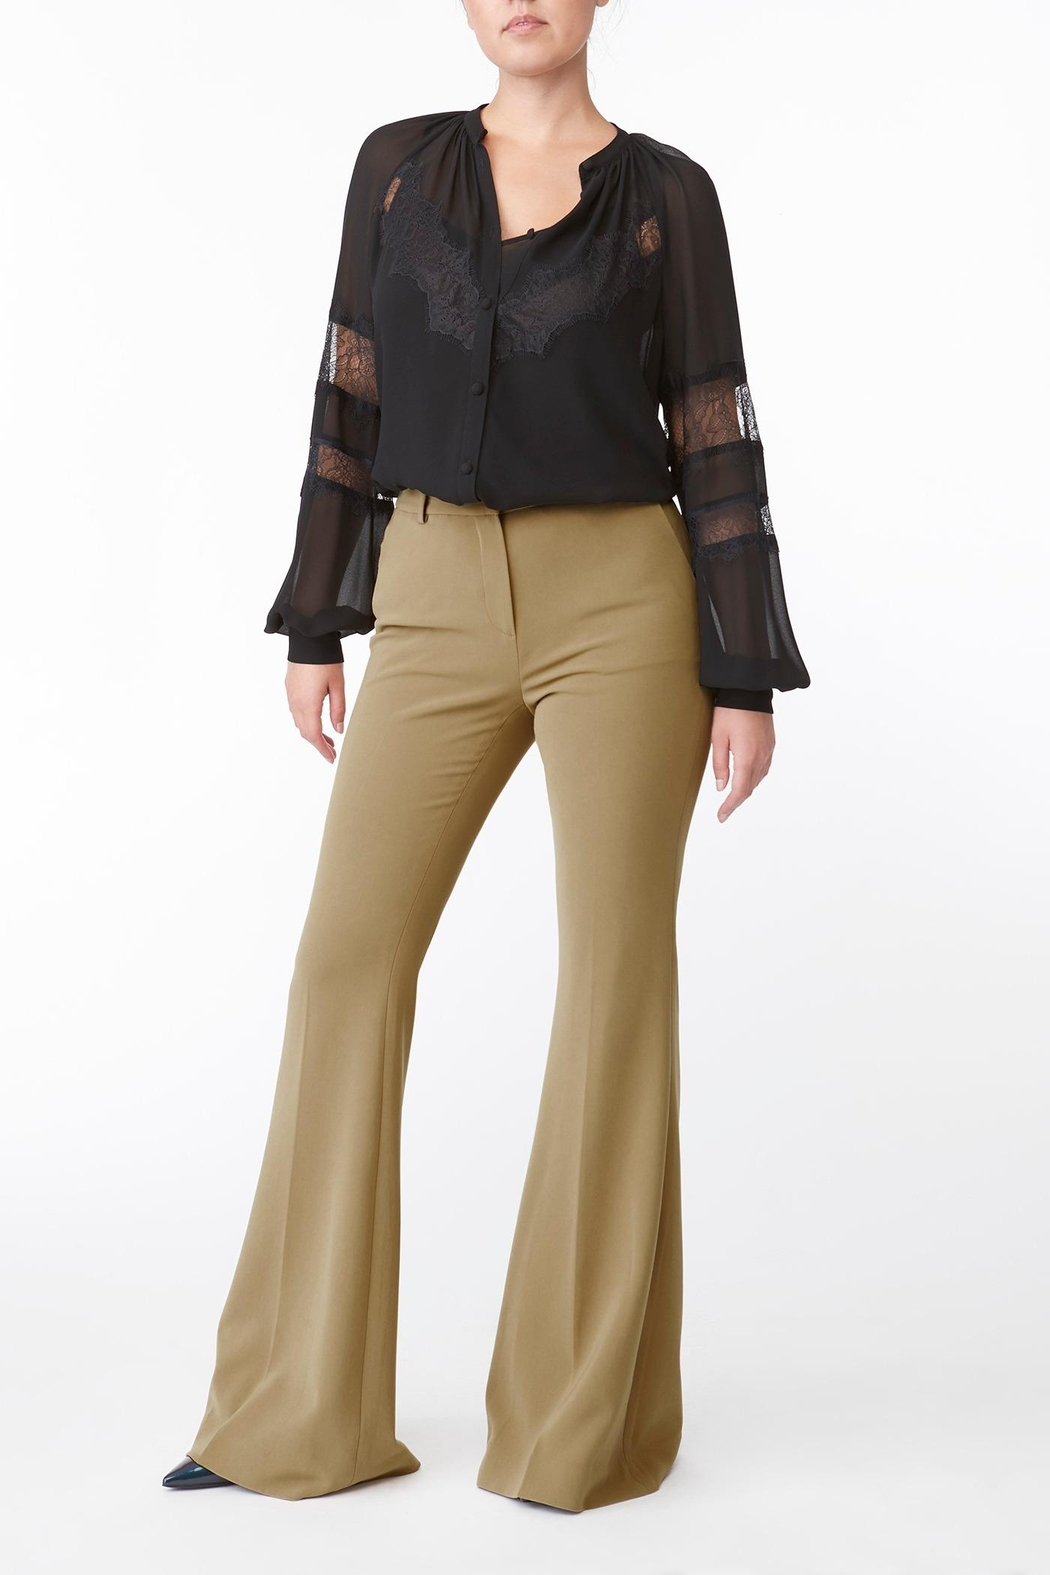 Michael Kors Solid Lace Inset Top - Main Image